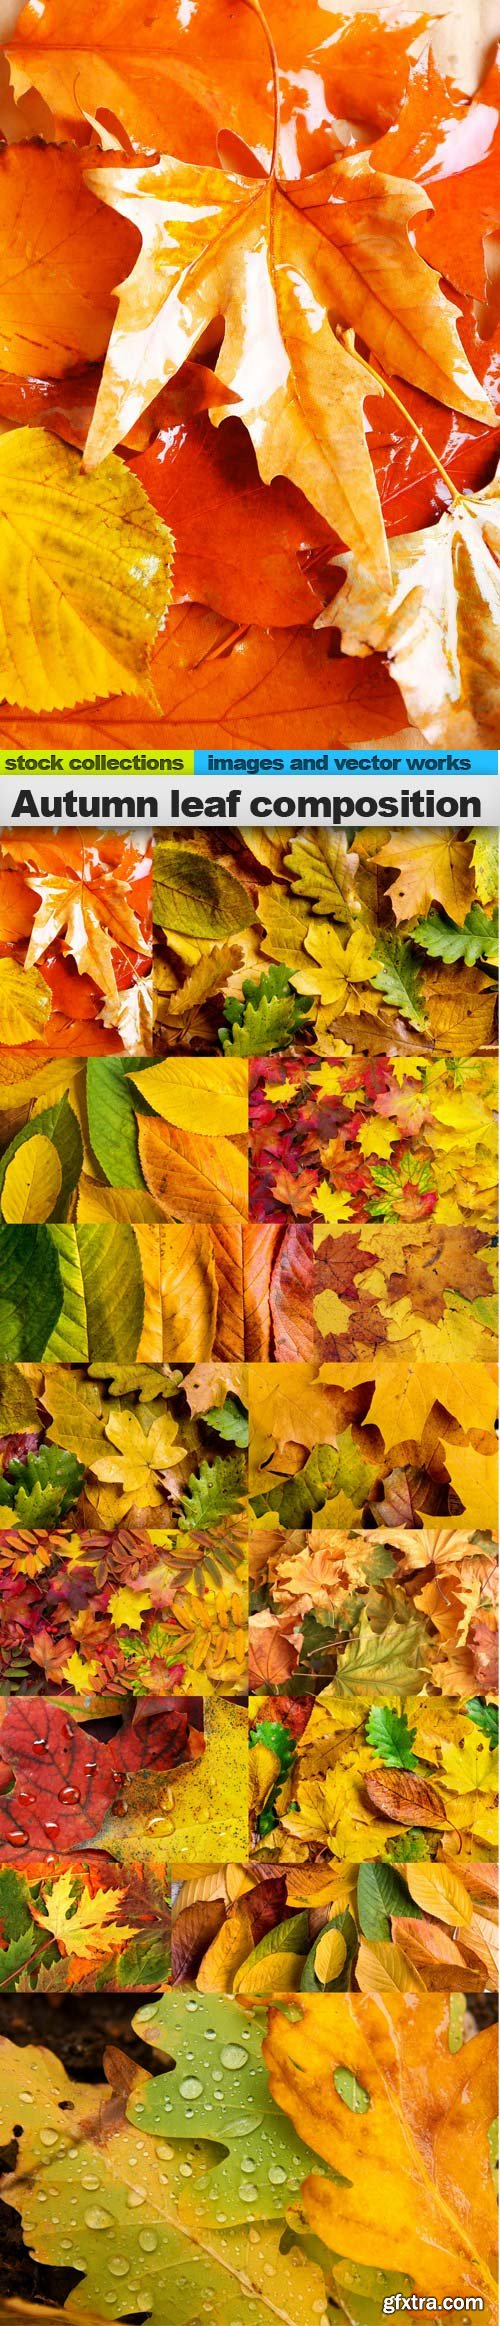 Autumn leaf composition, 15 x UHQ JPEG